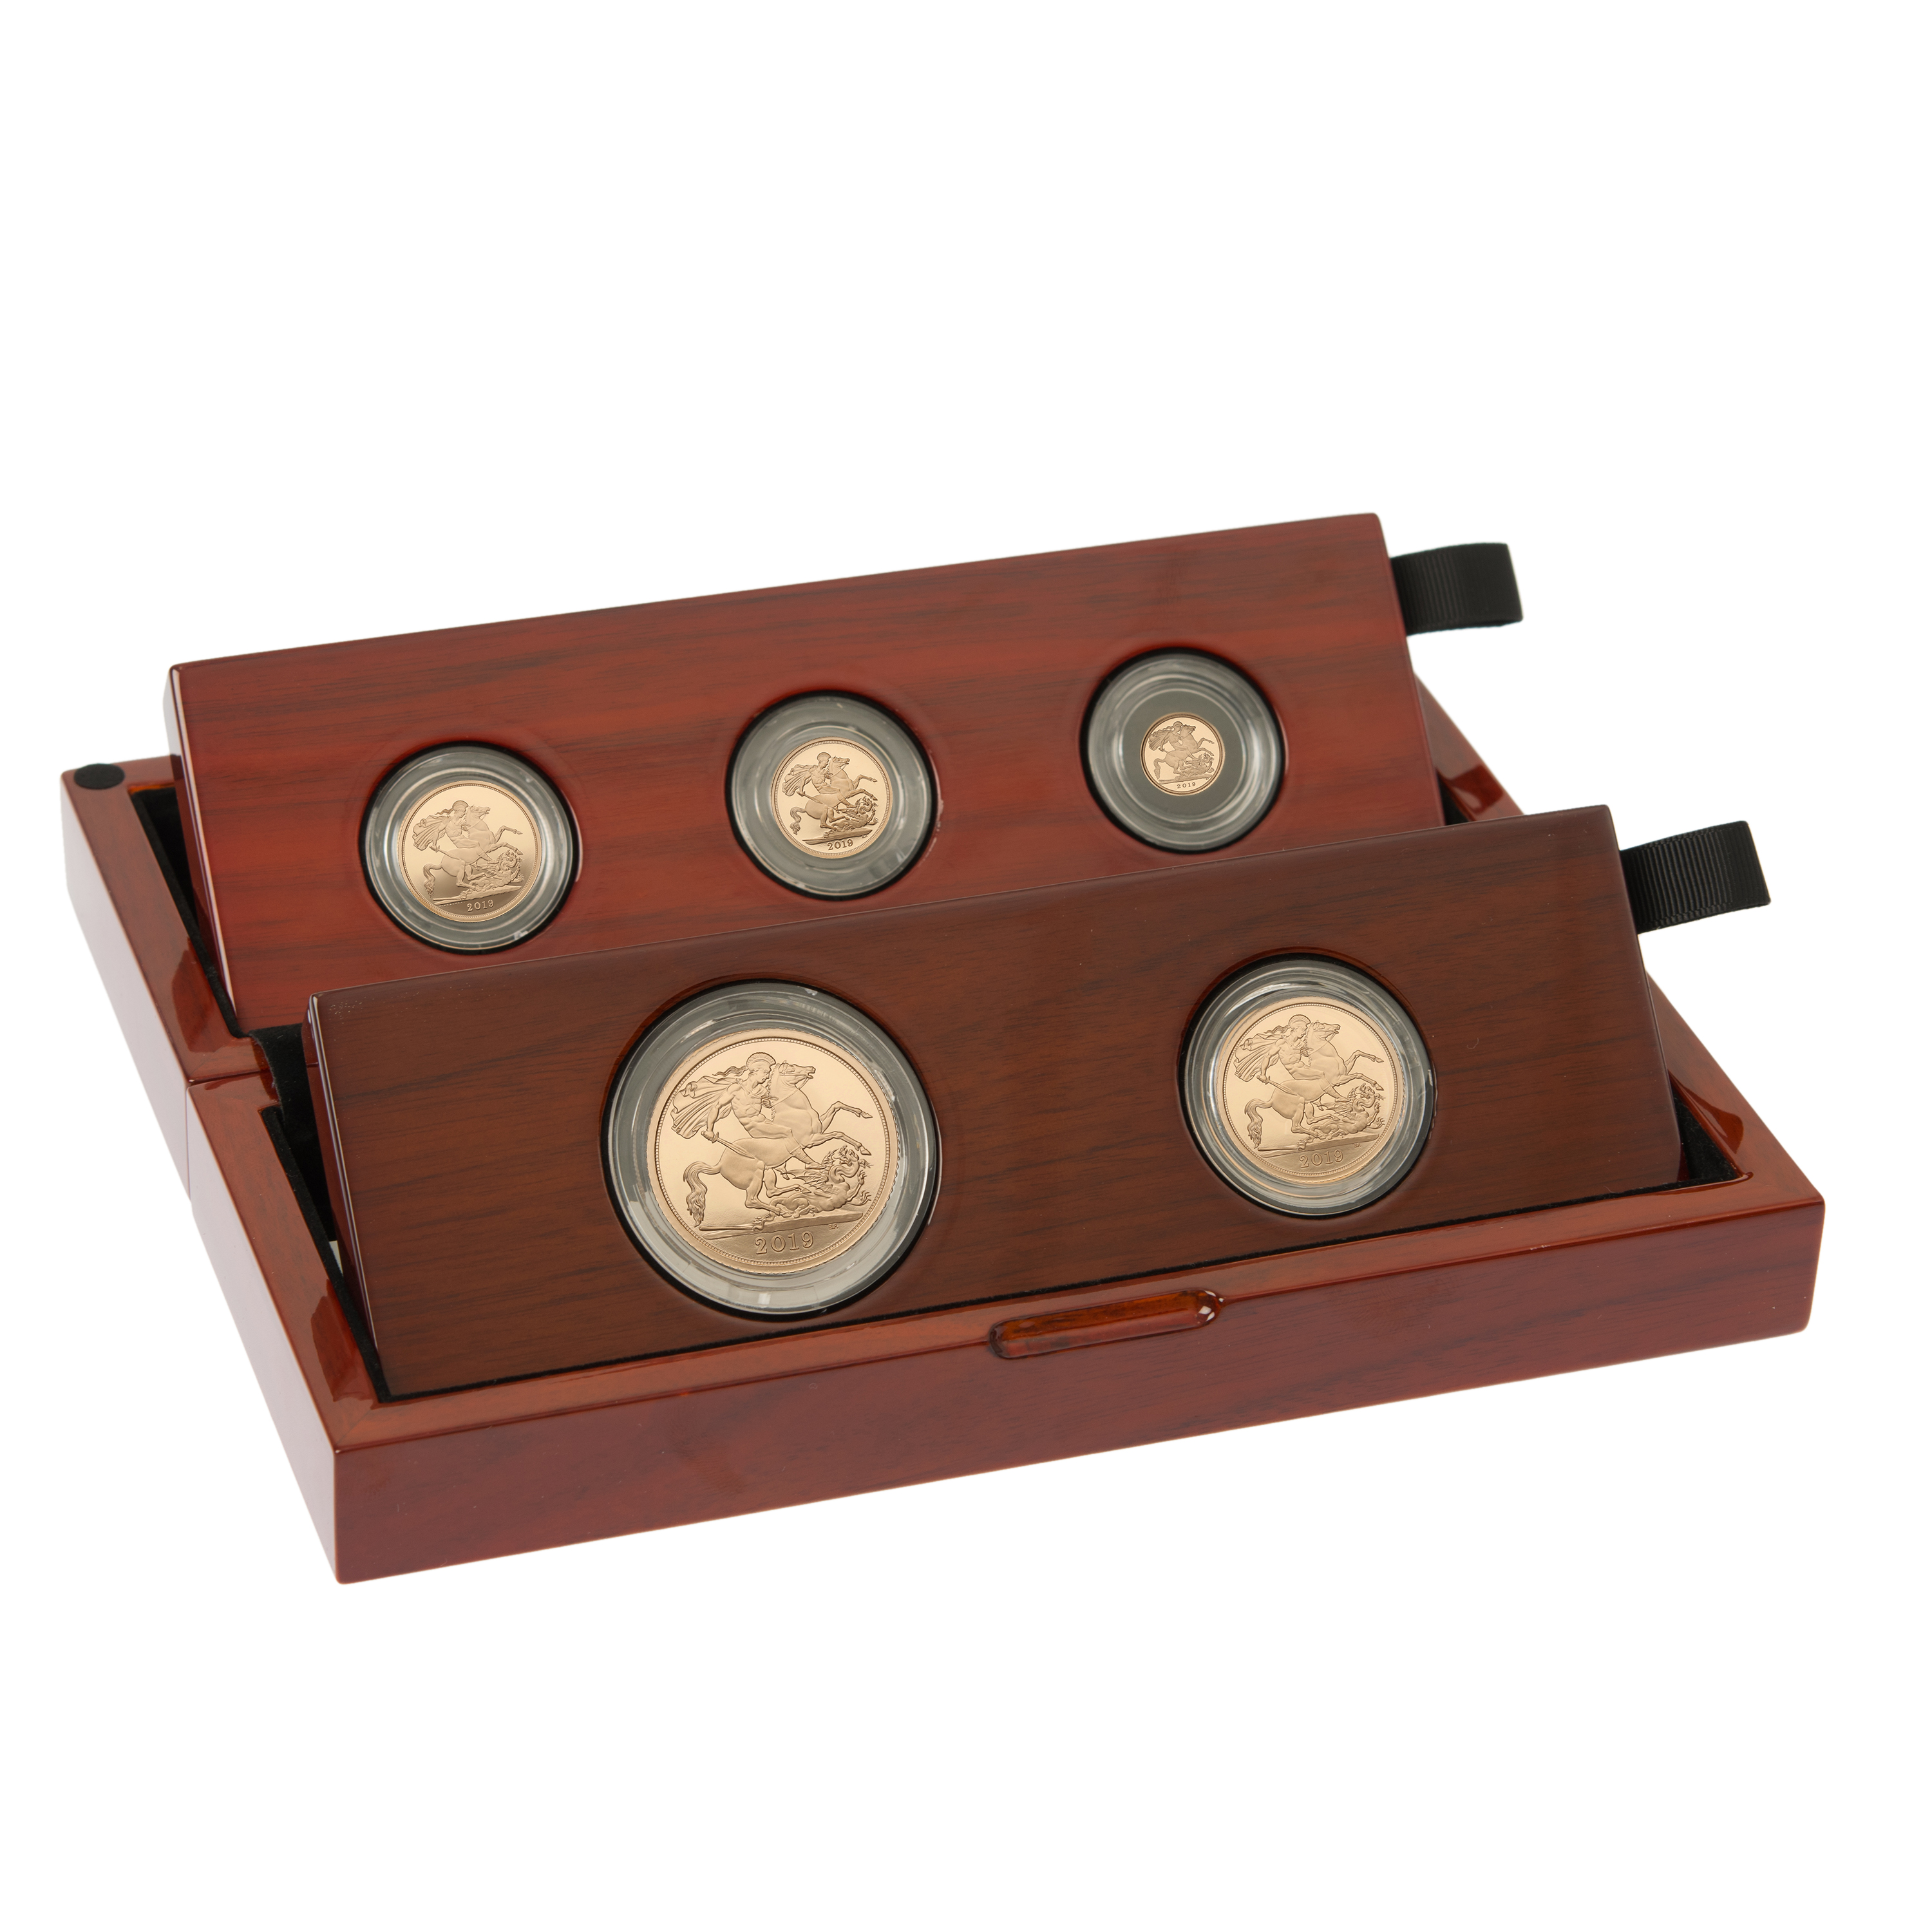 2019 Gold Proof Sovereign Five Coin Set - Fifth Head Boxed